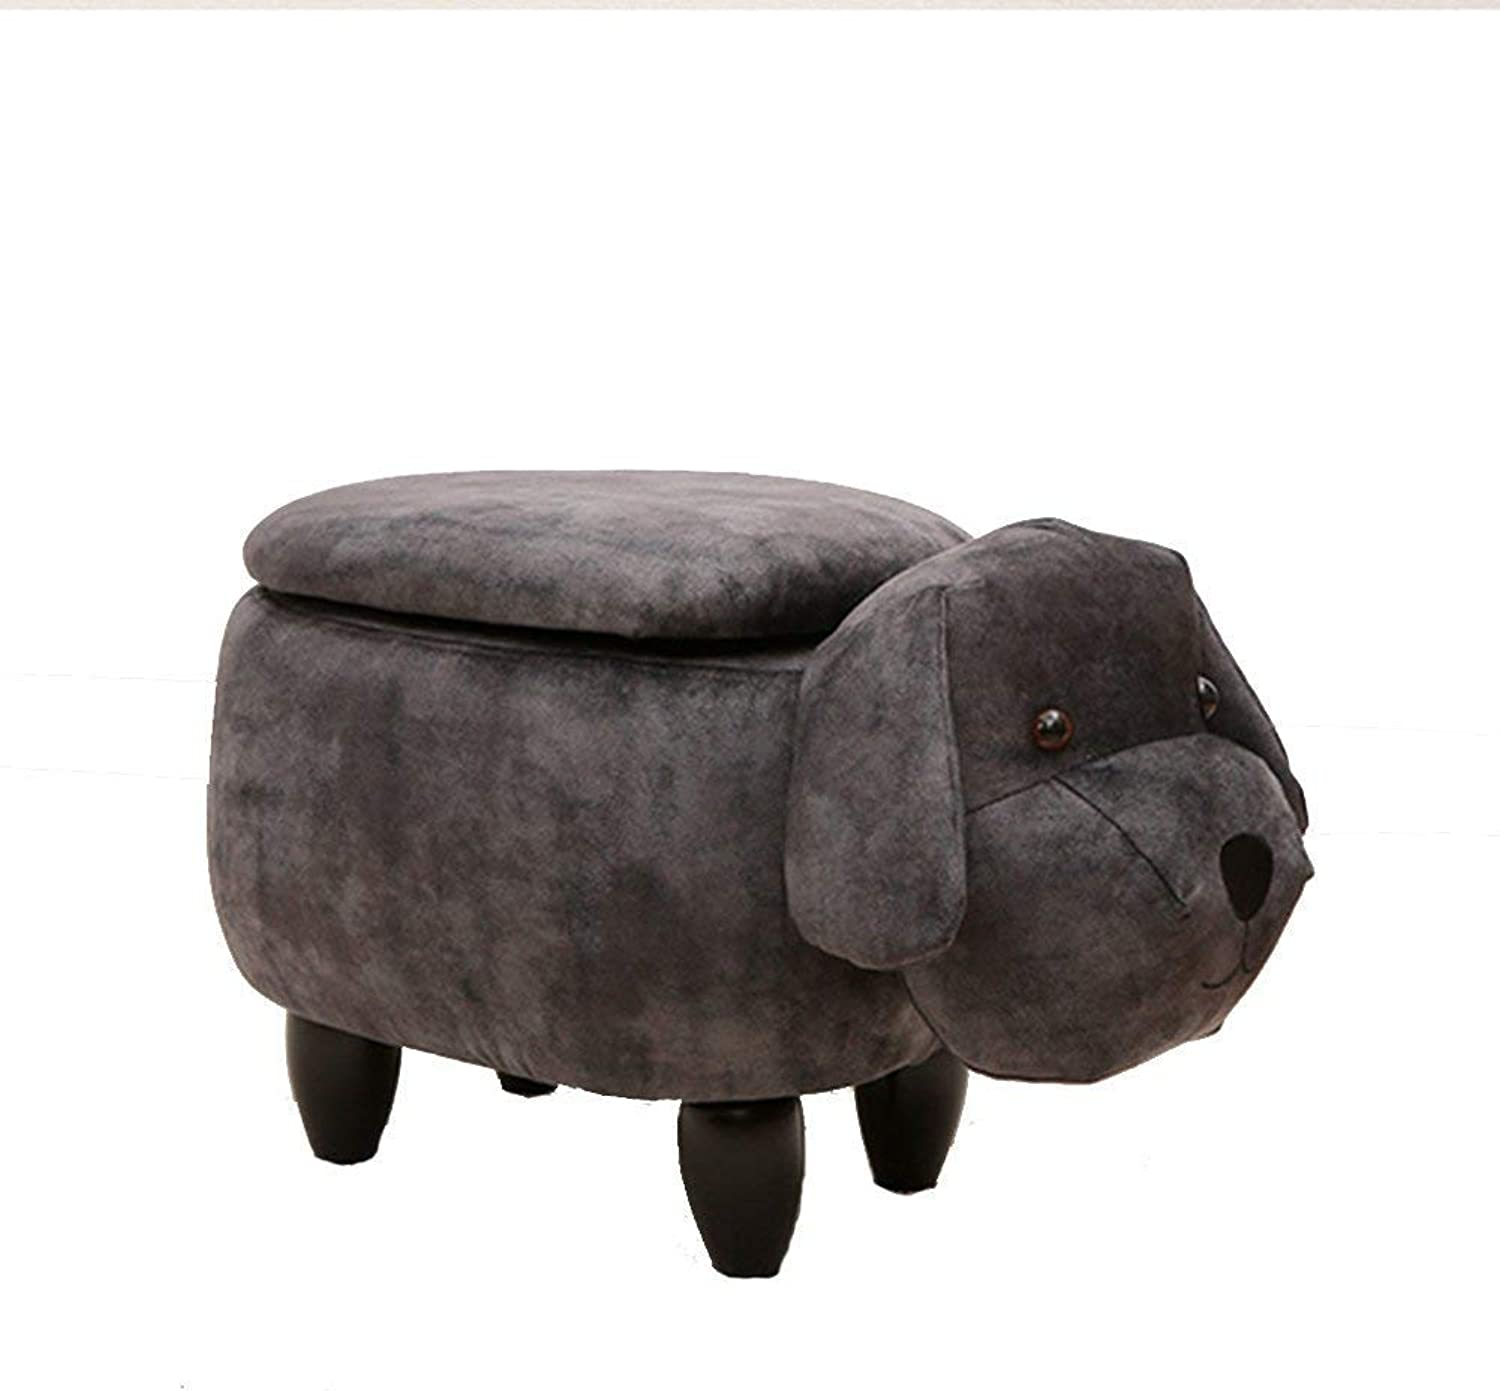 Stool Chair Multi-Function Storage Stool Creative Design Solid Wood Storage Dog Stool Cloth shoes Bench Home Sofa Bench (color   A, Size   2)